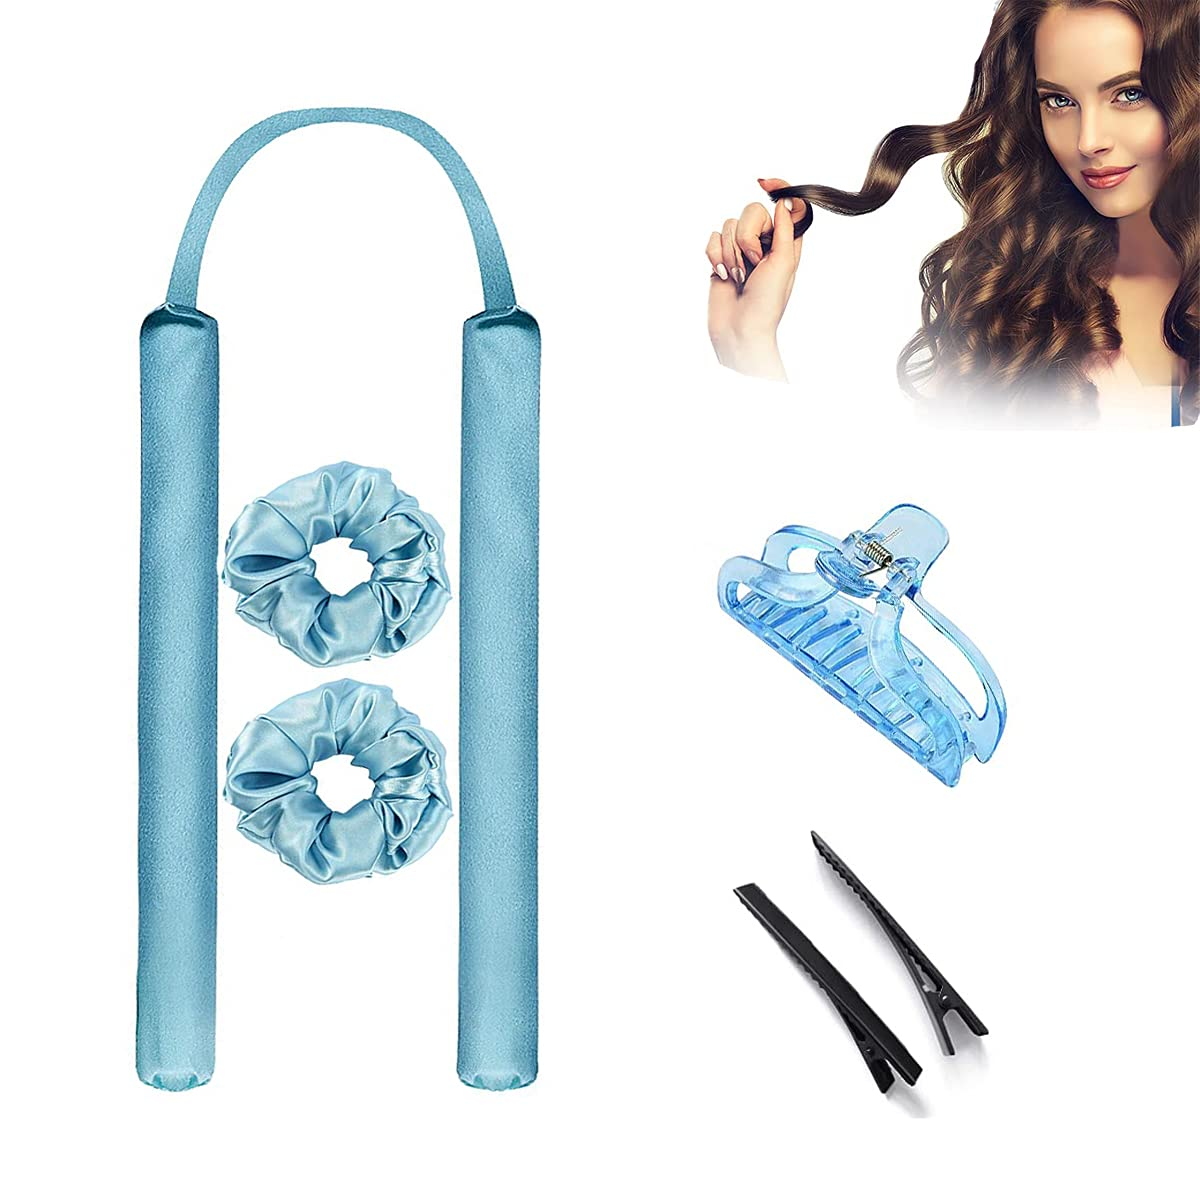 Upgrade Heatless Curling Rod Hair Ranking New Shipping Free Shipping TOP10 Curlers Lazy Headband